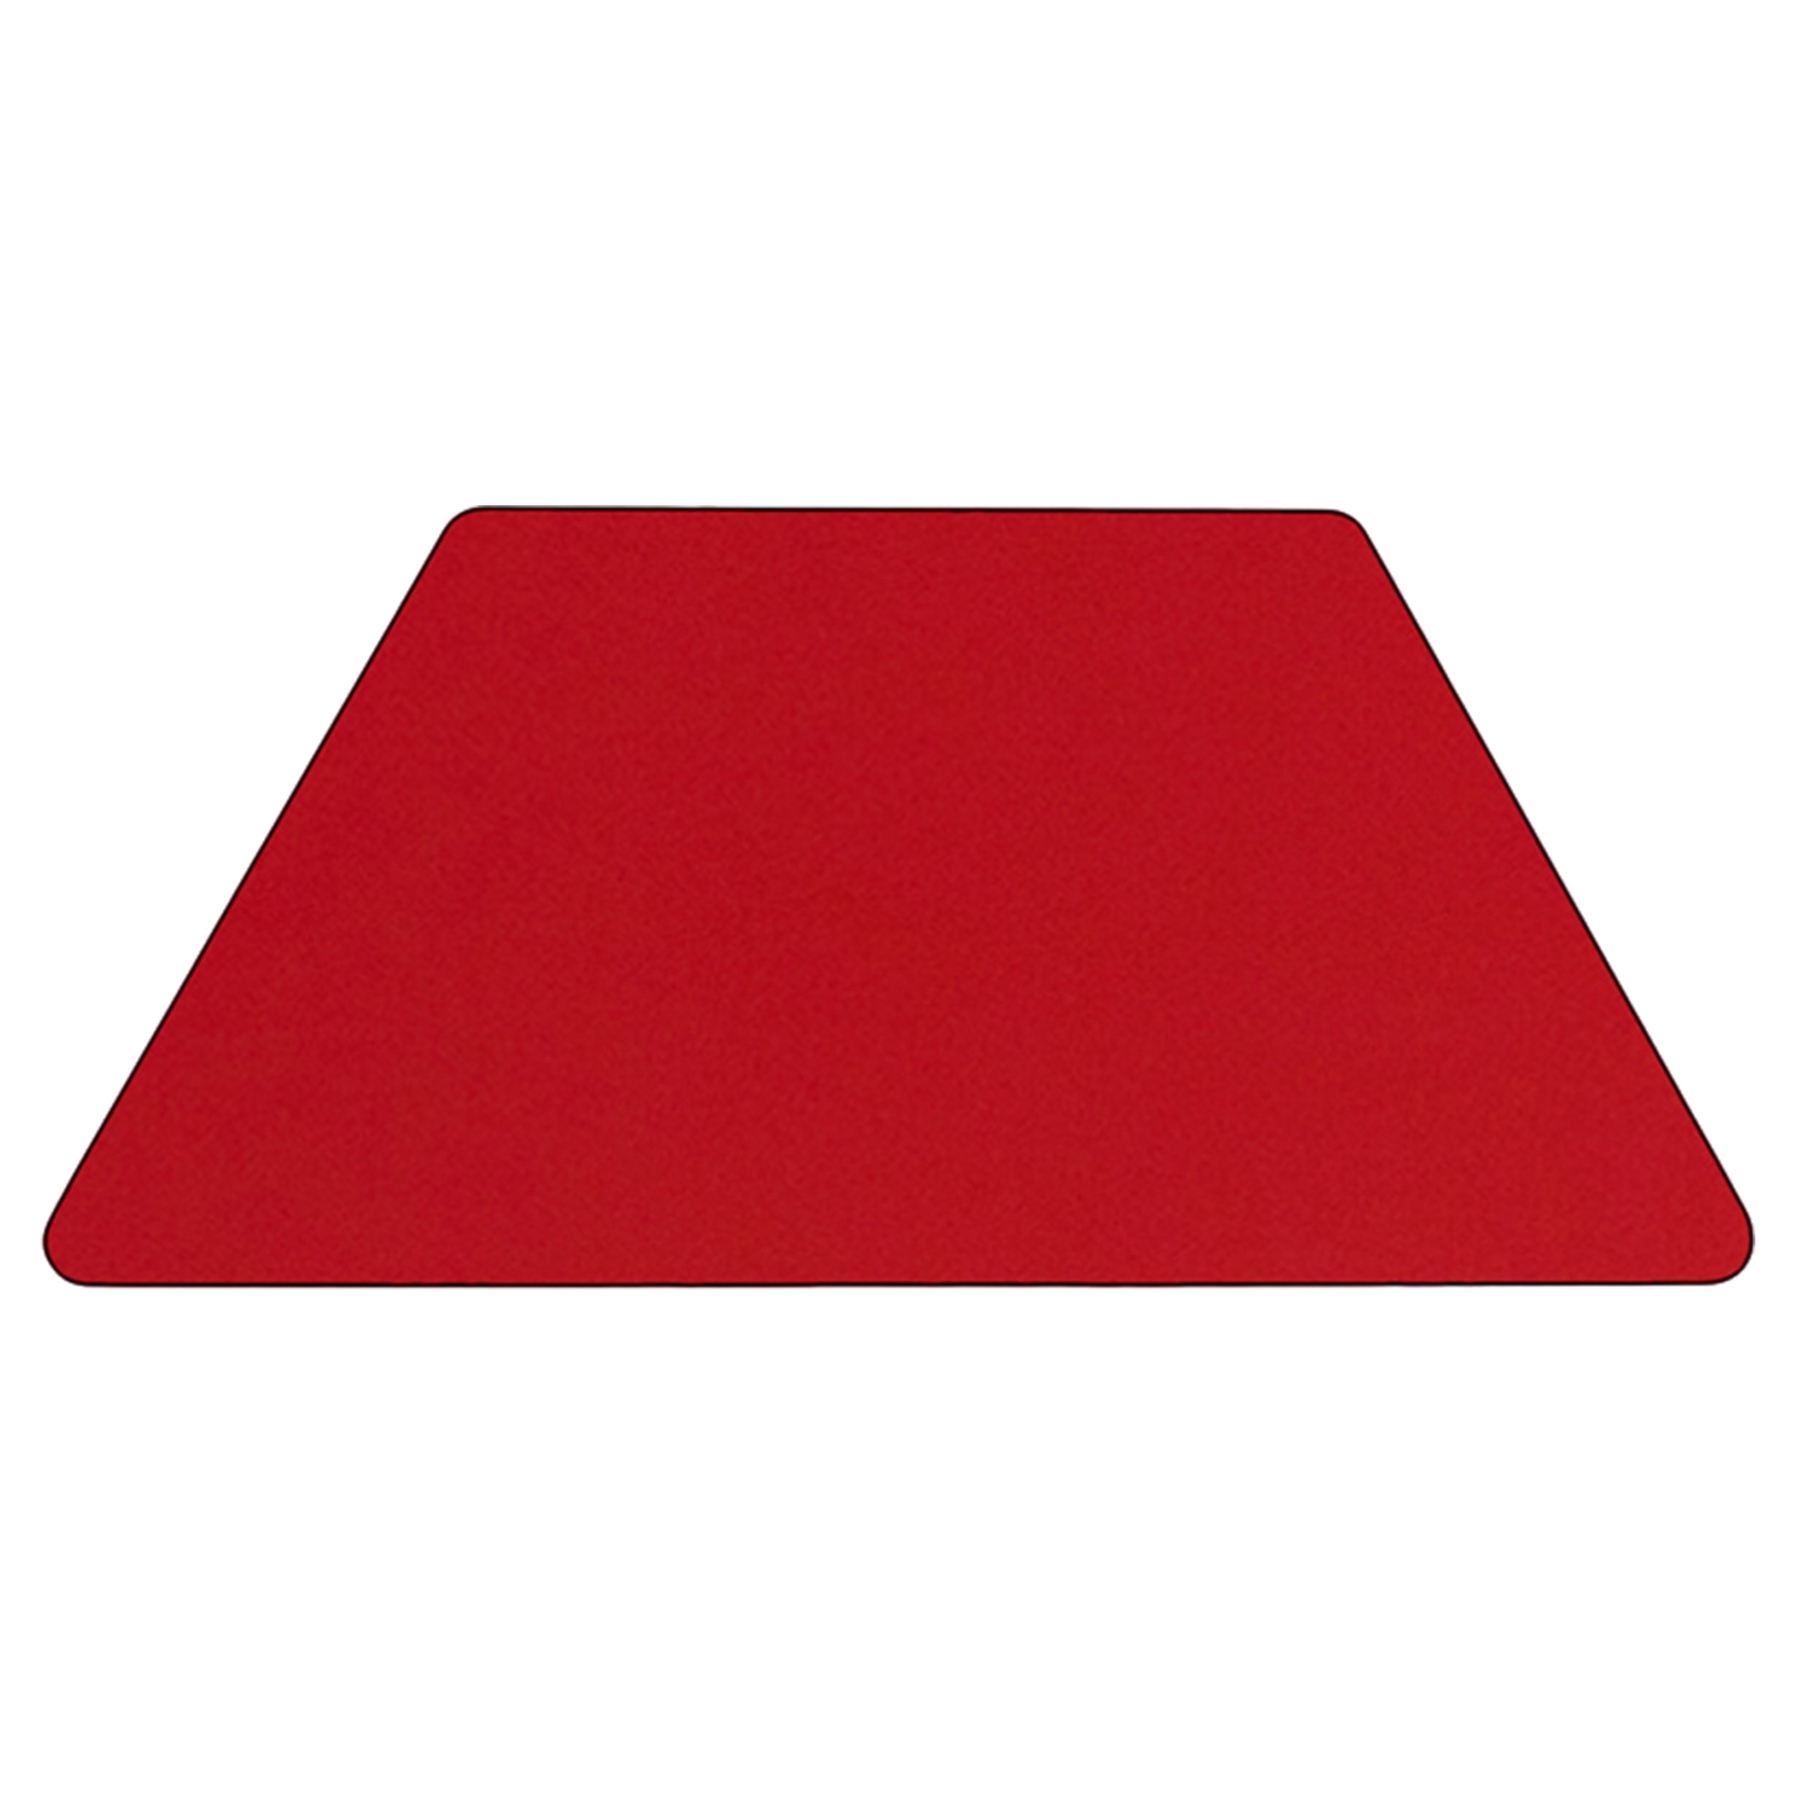 hight resolution of mobile 24 quot x 48 quot trapezoid preschool activity table red